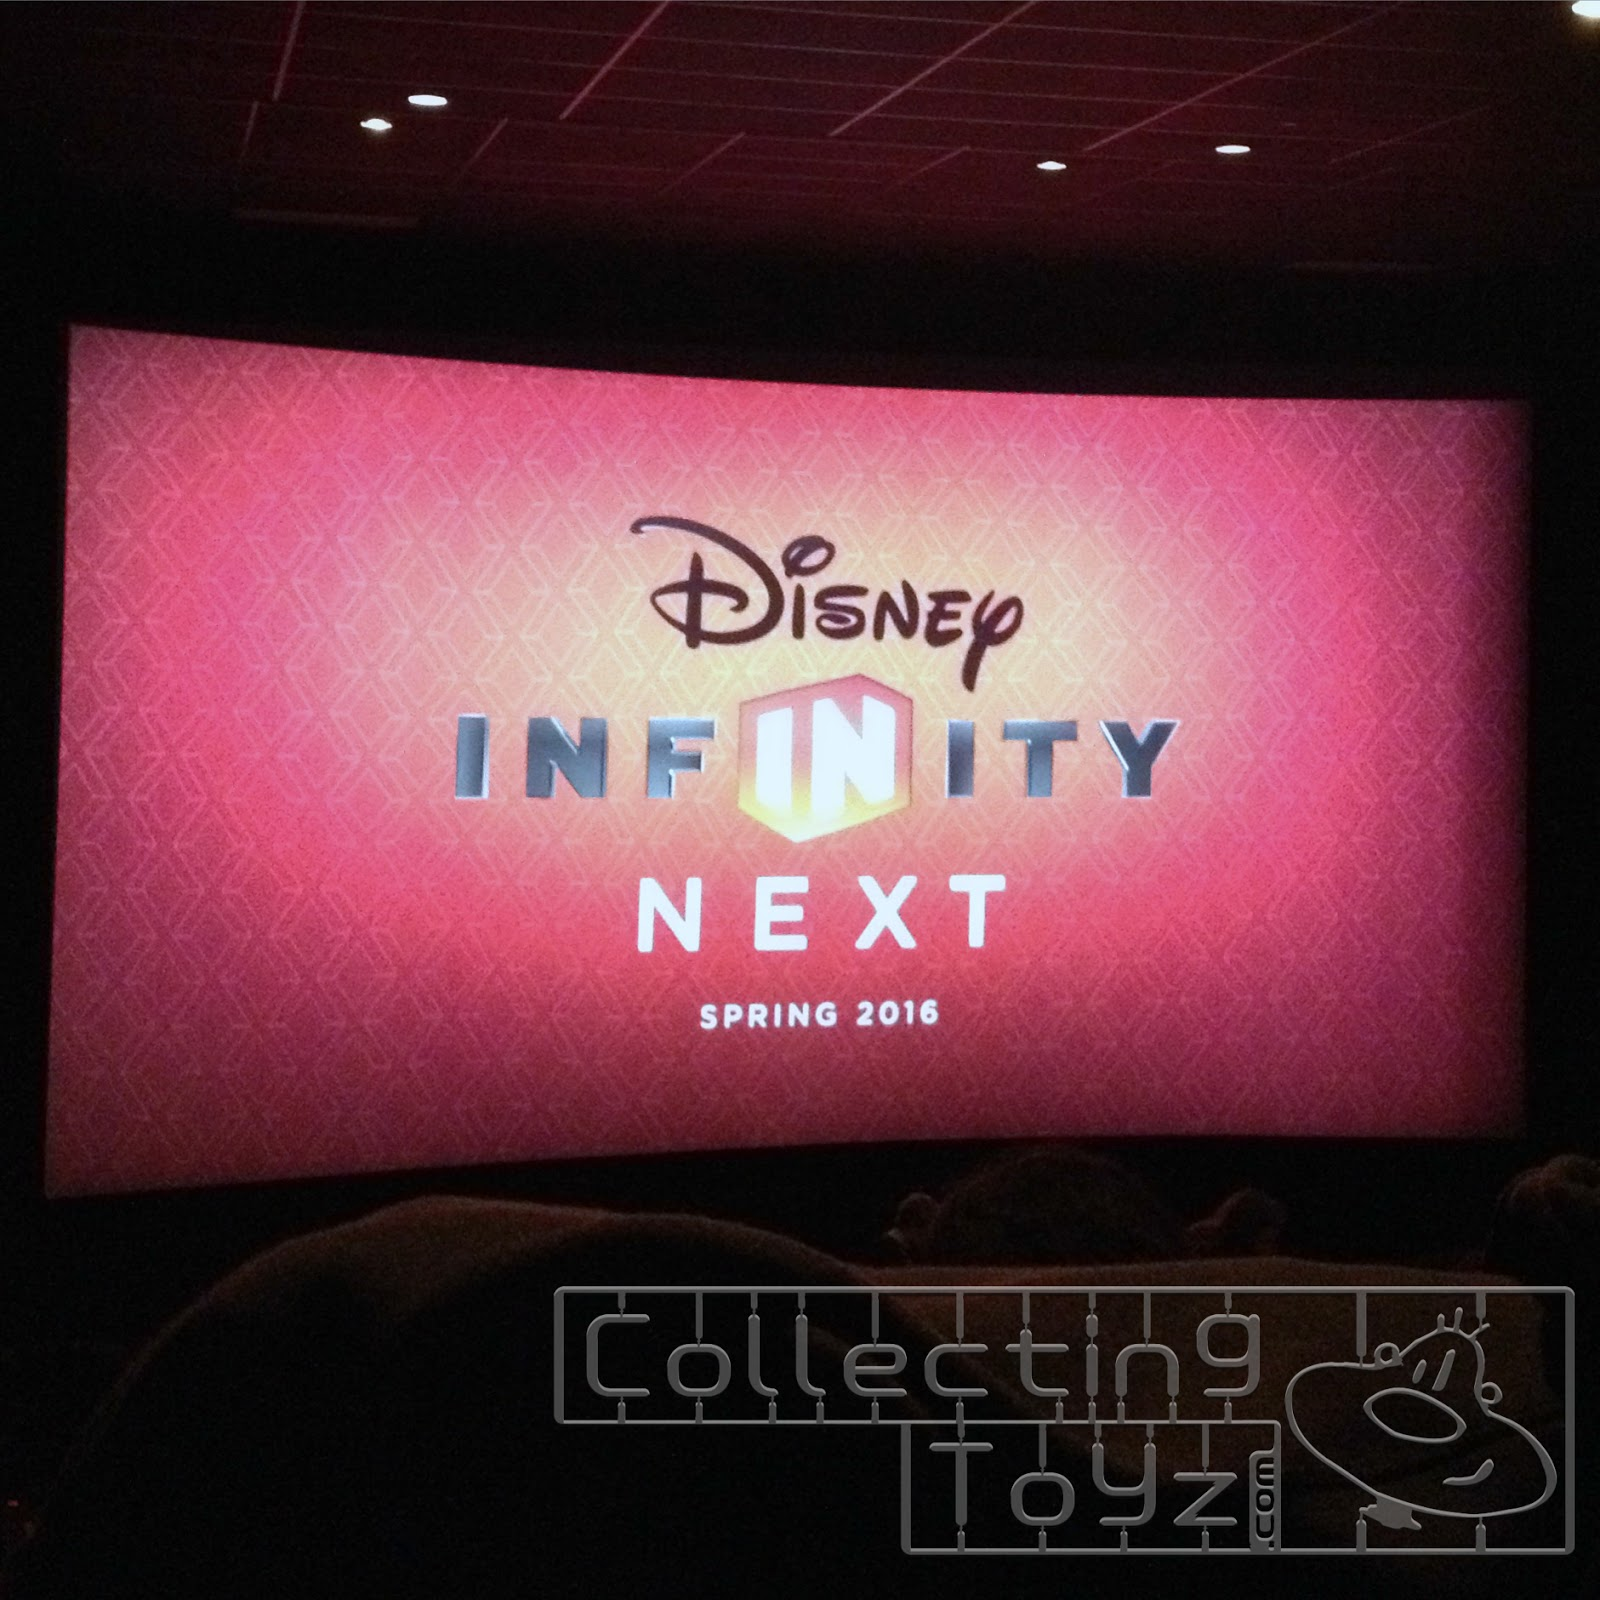 9e1e156ba45 Last week we had the opportunity to check out the Disney Infinity Next  event which also featured a screening of Disney s Zootopia before it was  released in ...